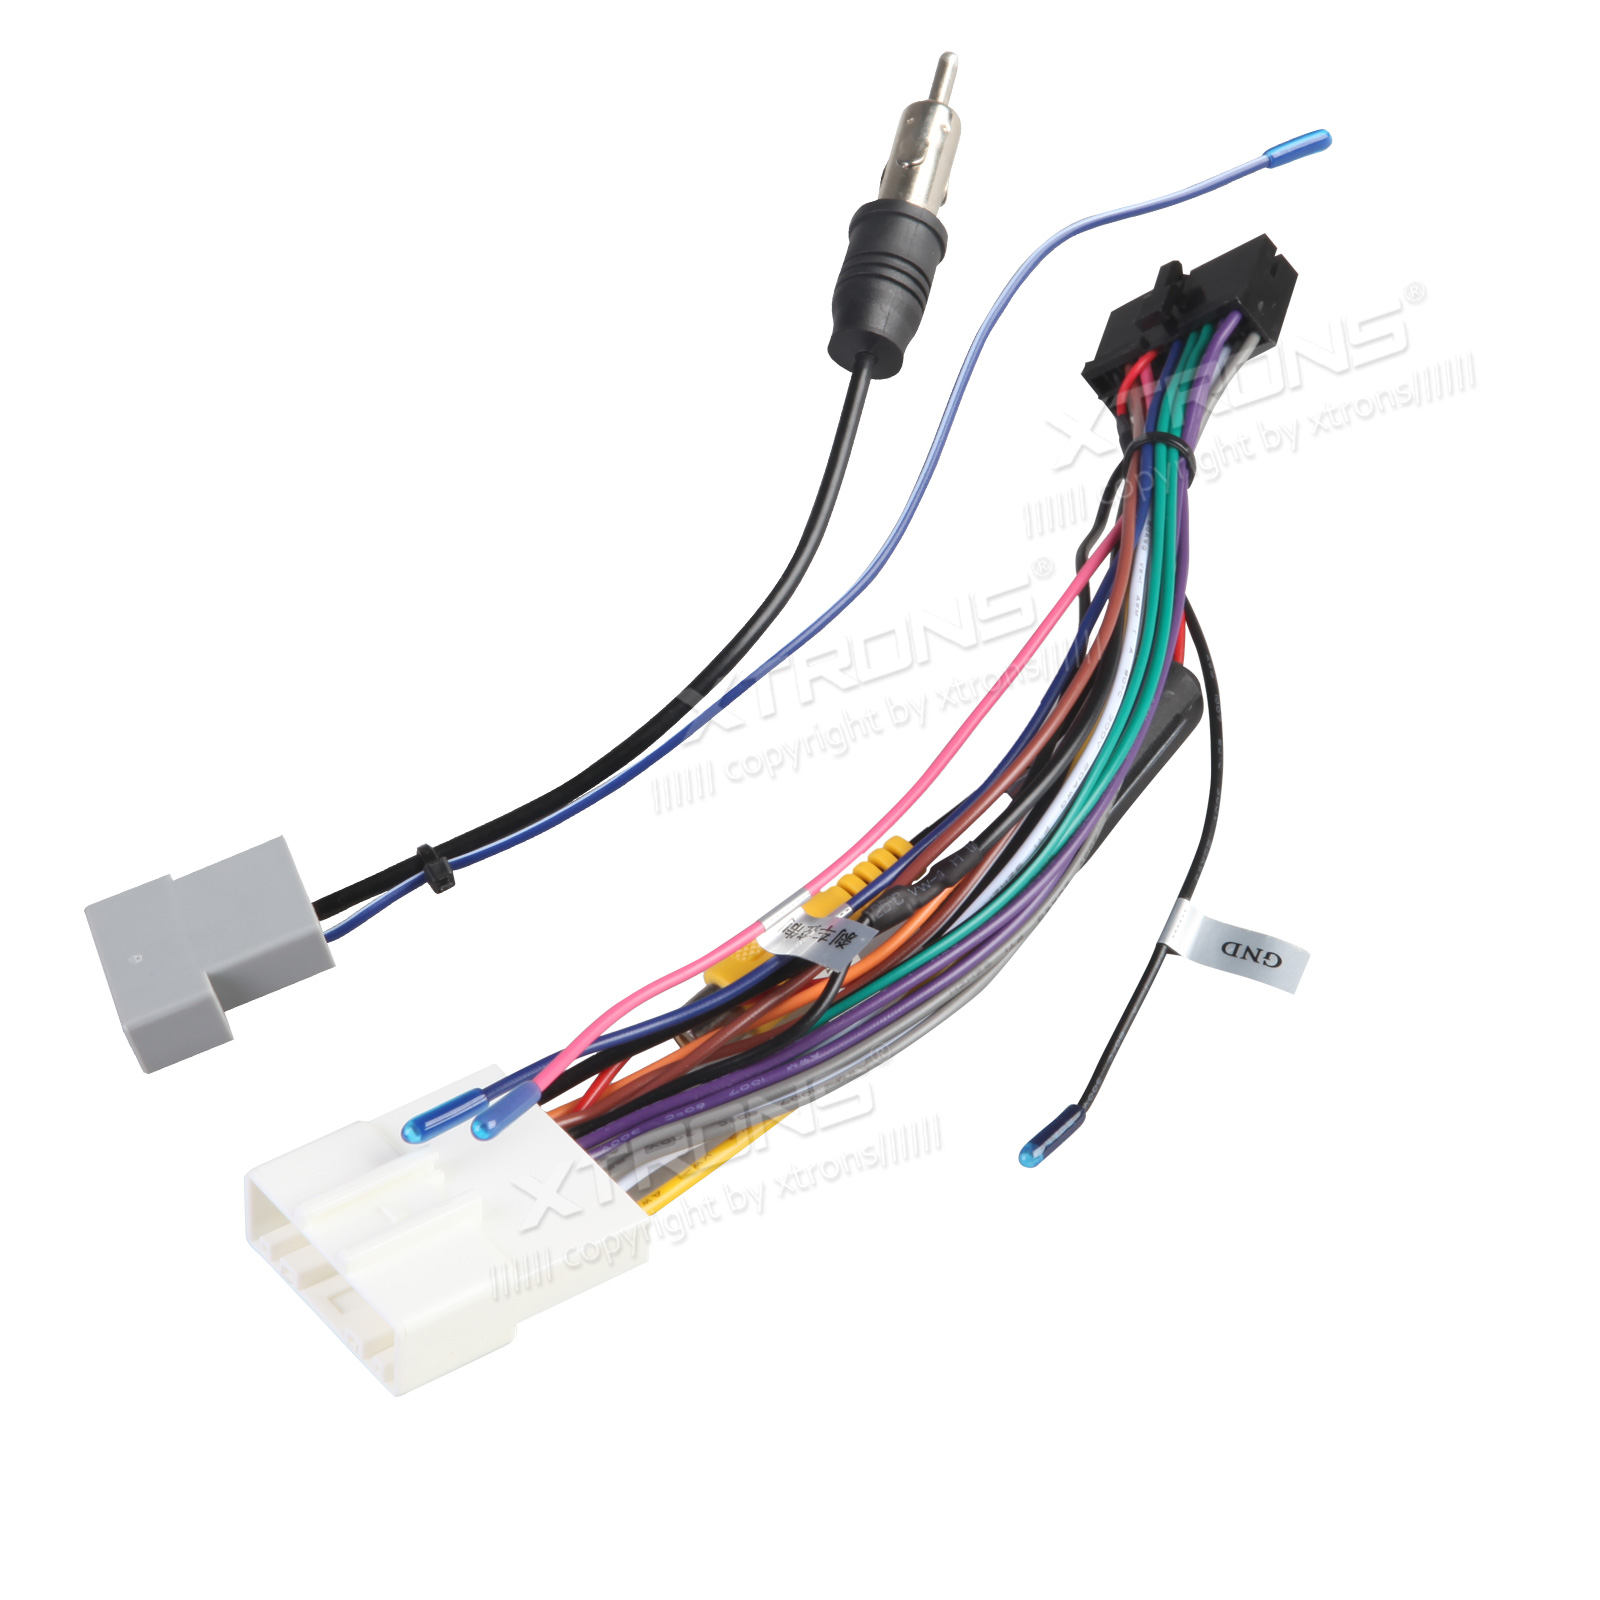 Buy Car Media Fitting And Accessories Xtrons Stereo Wiring Harness Toyota Iso For The Installation Of Td626ab Td626abd In Nissan Cars